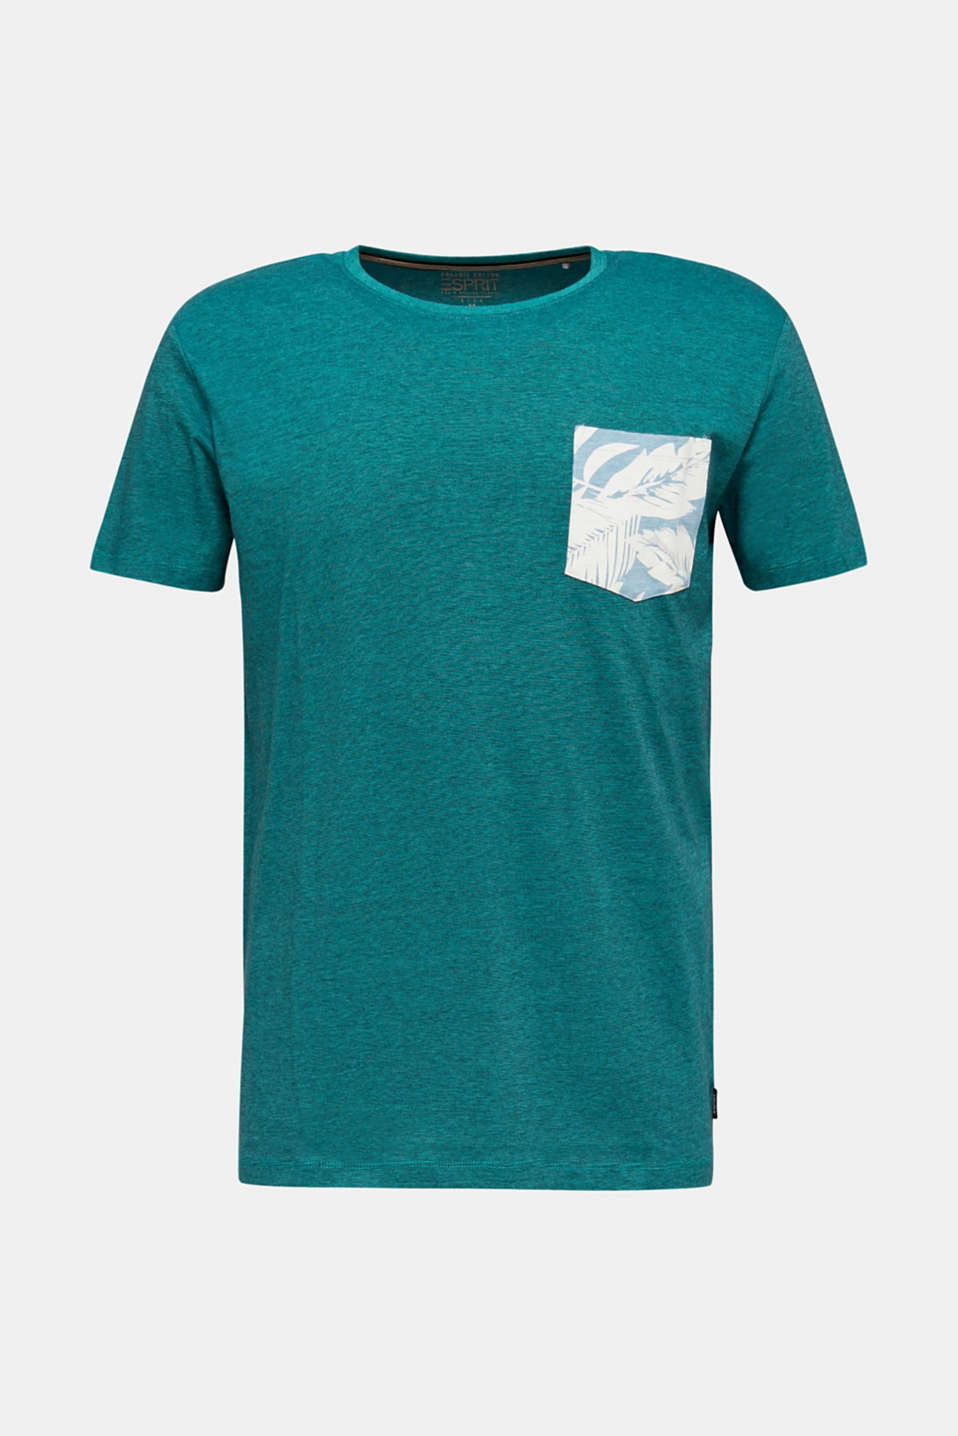 Jersey top, 100% organic cotton, LIGHT TURQUOISE 3, detail image number 7